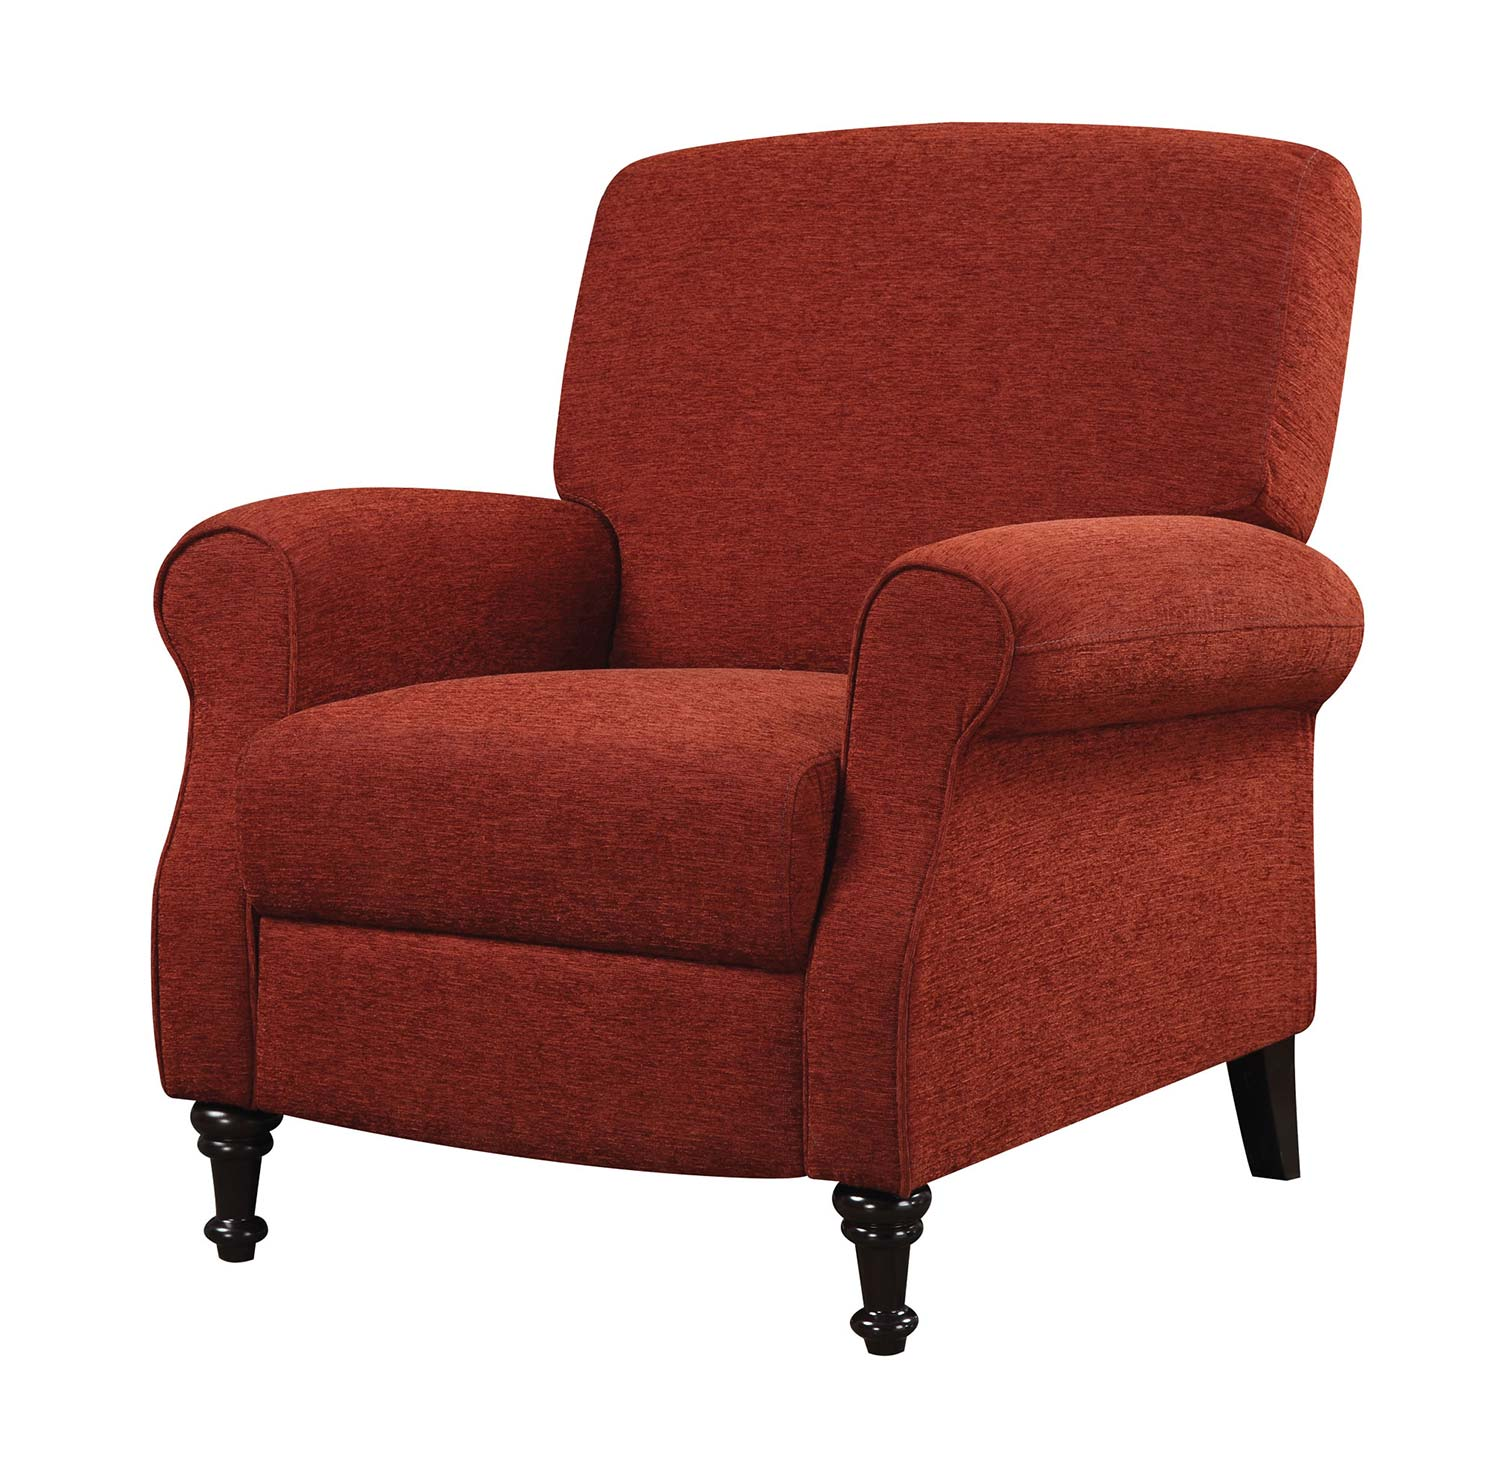 Push Back Chair Coaster 600326 Push Back Recliner Wine Red 600326 At